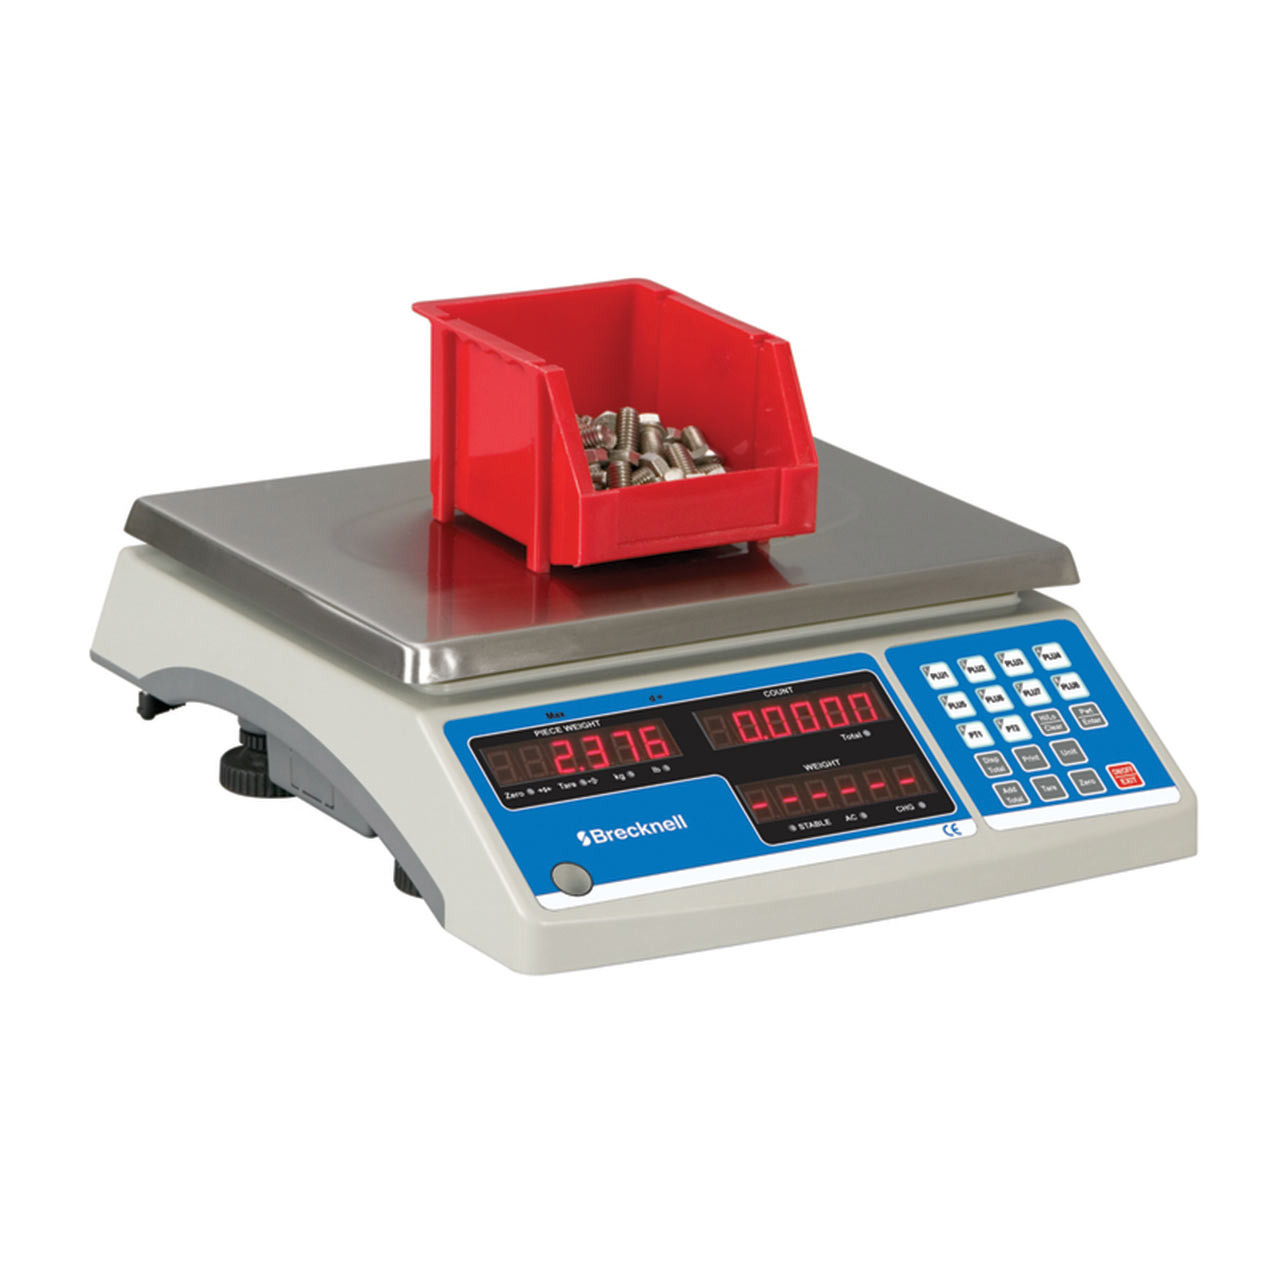 High Accuracy Counting Scale Side View Weighing Container